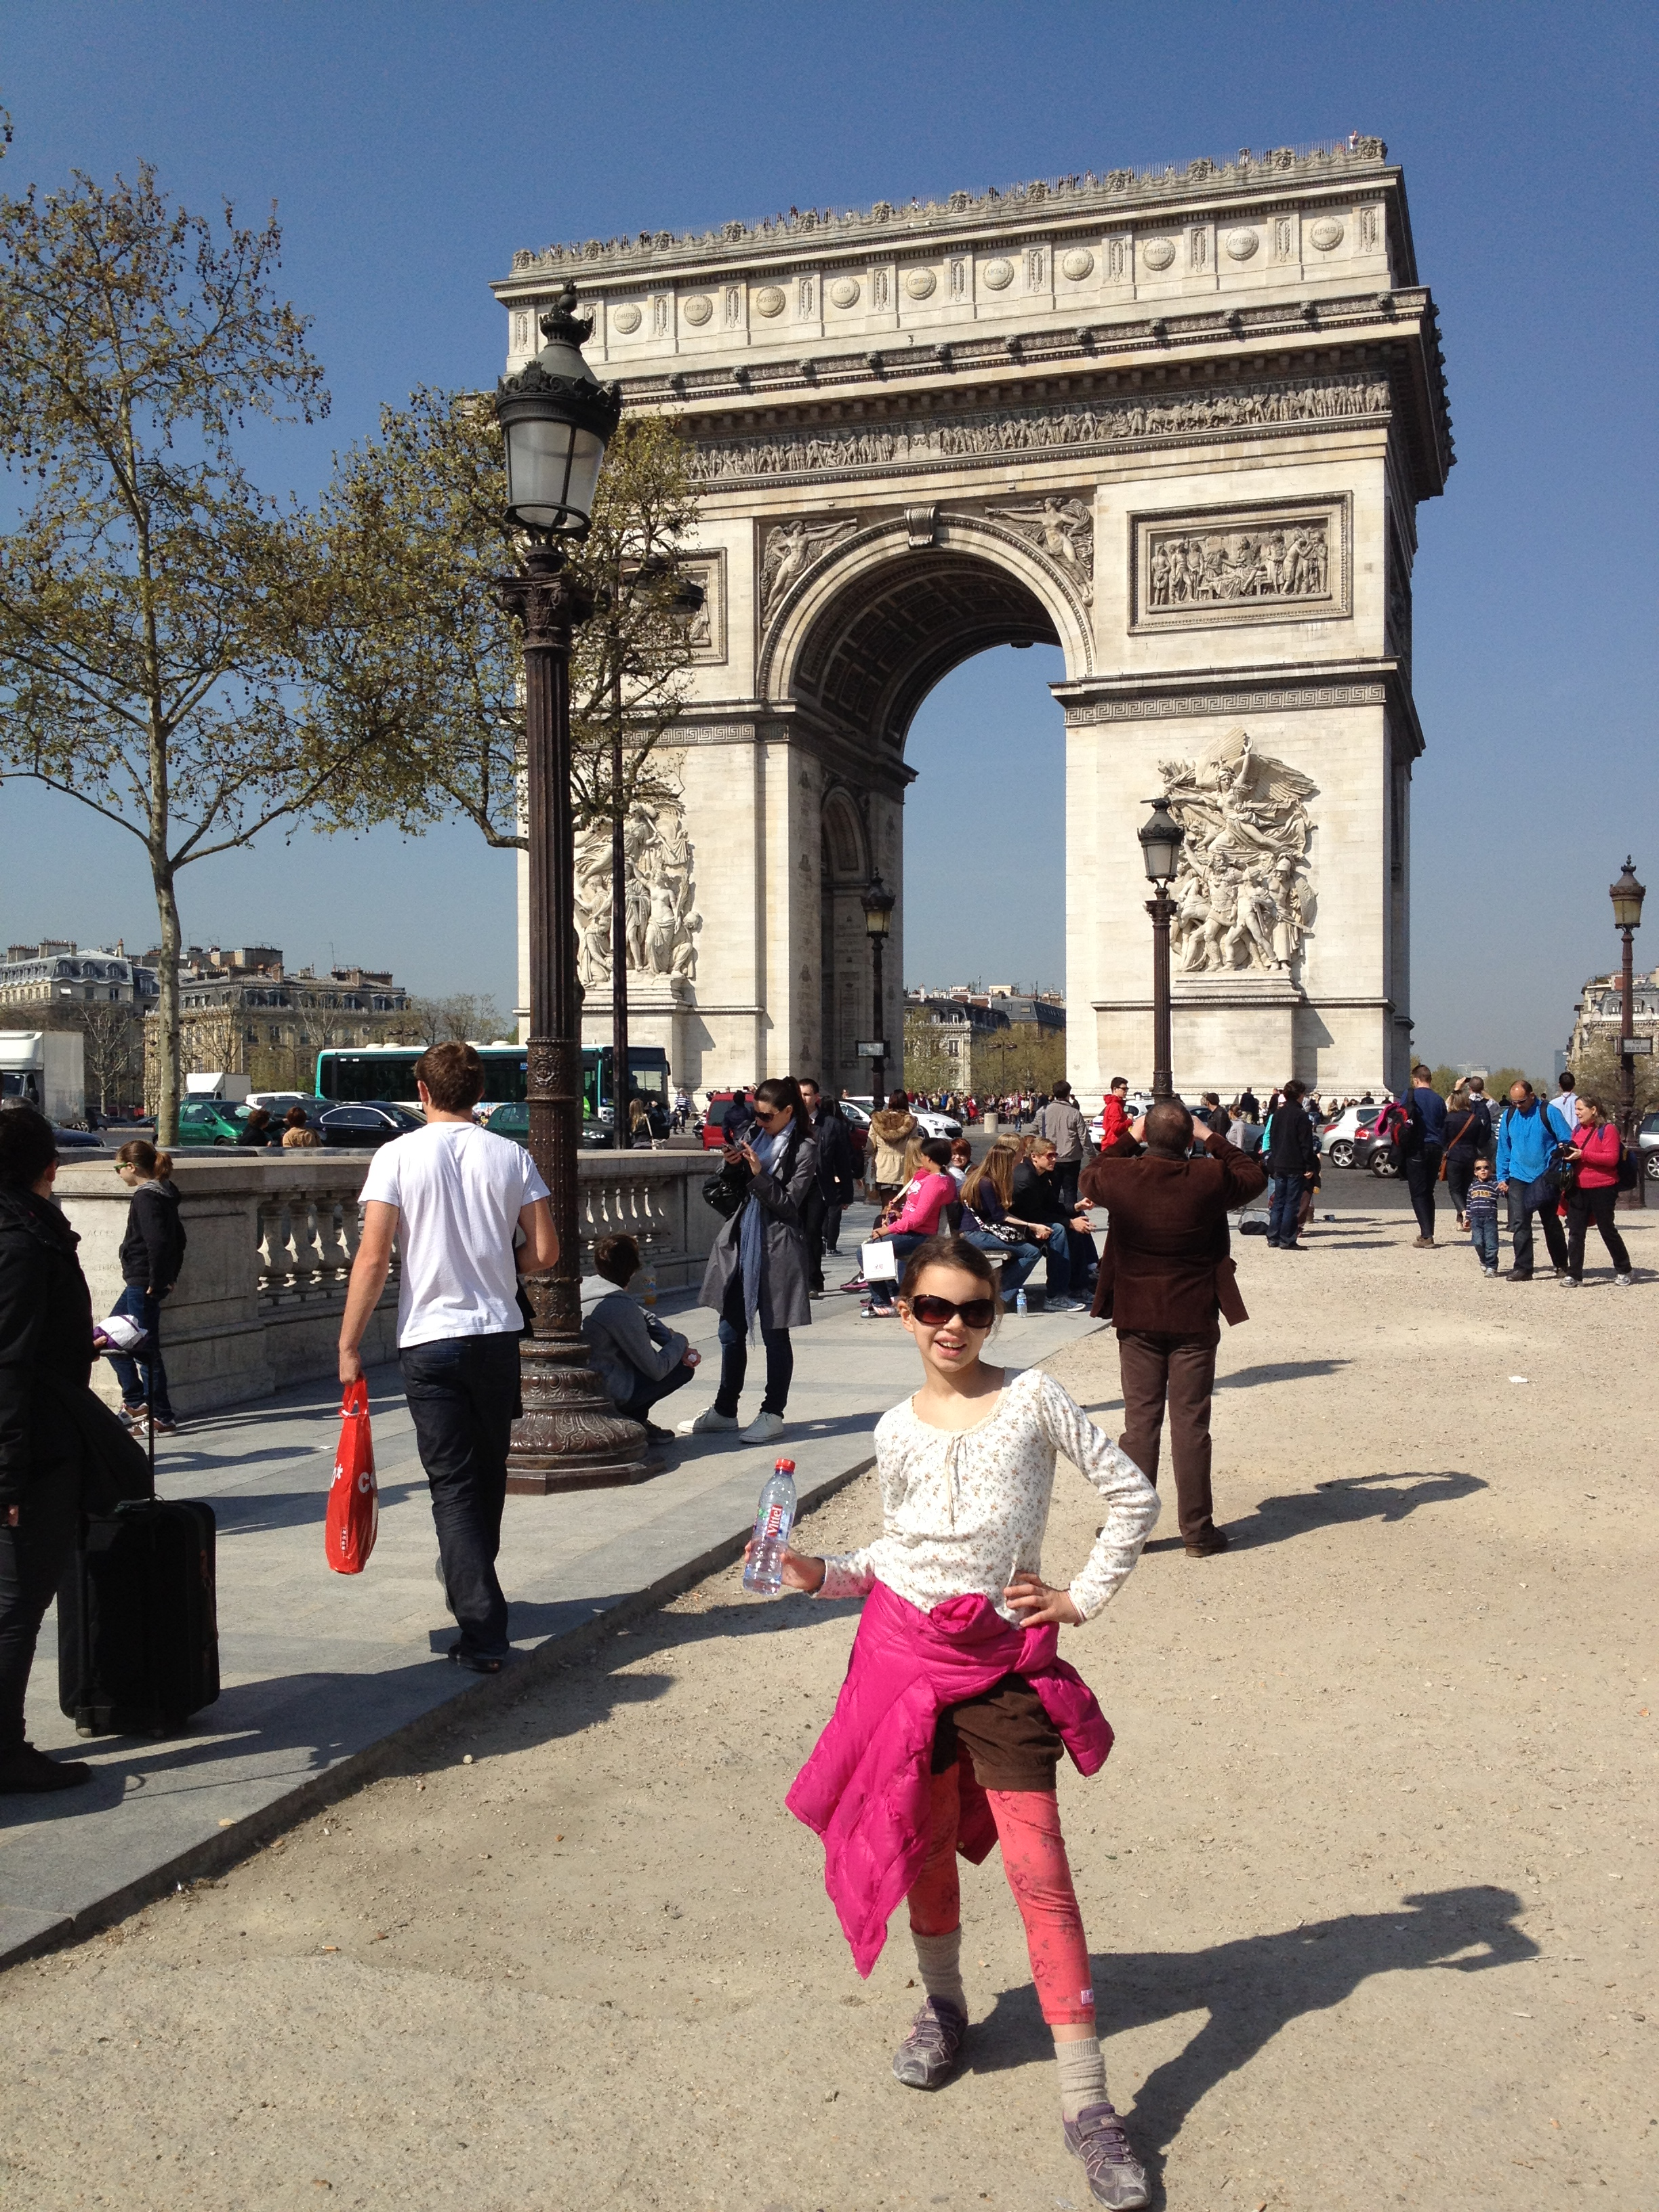 Photograph of young girl in front of Arc de Triomphe in Paris